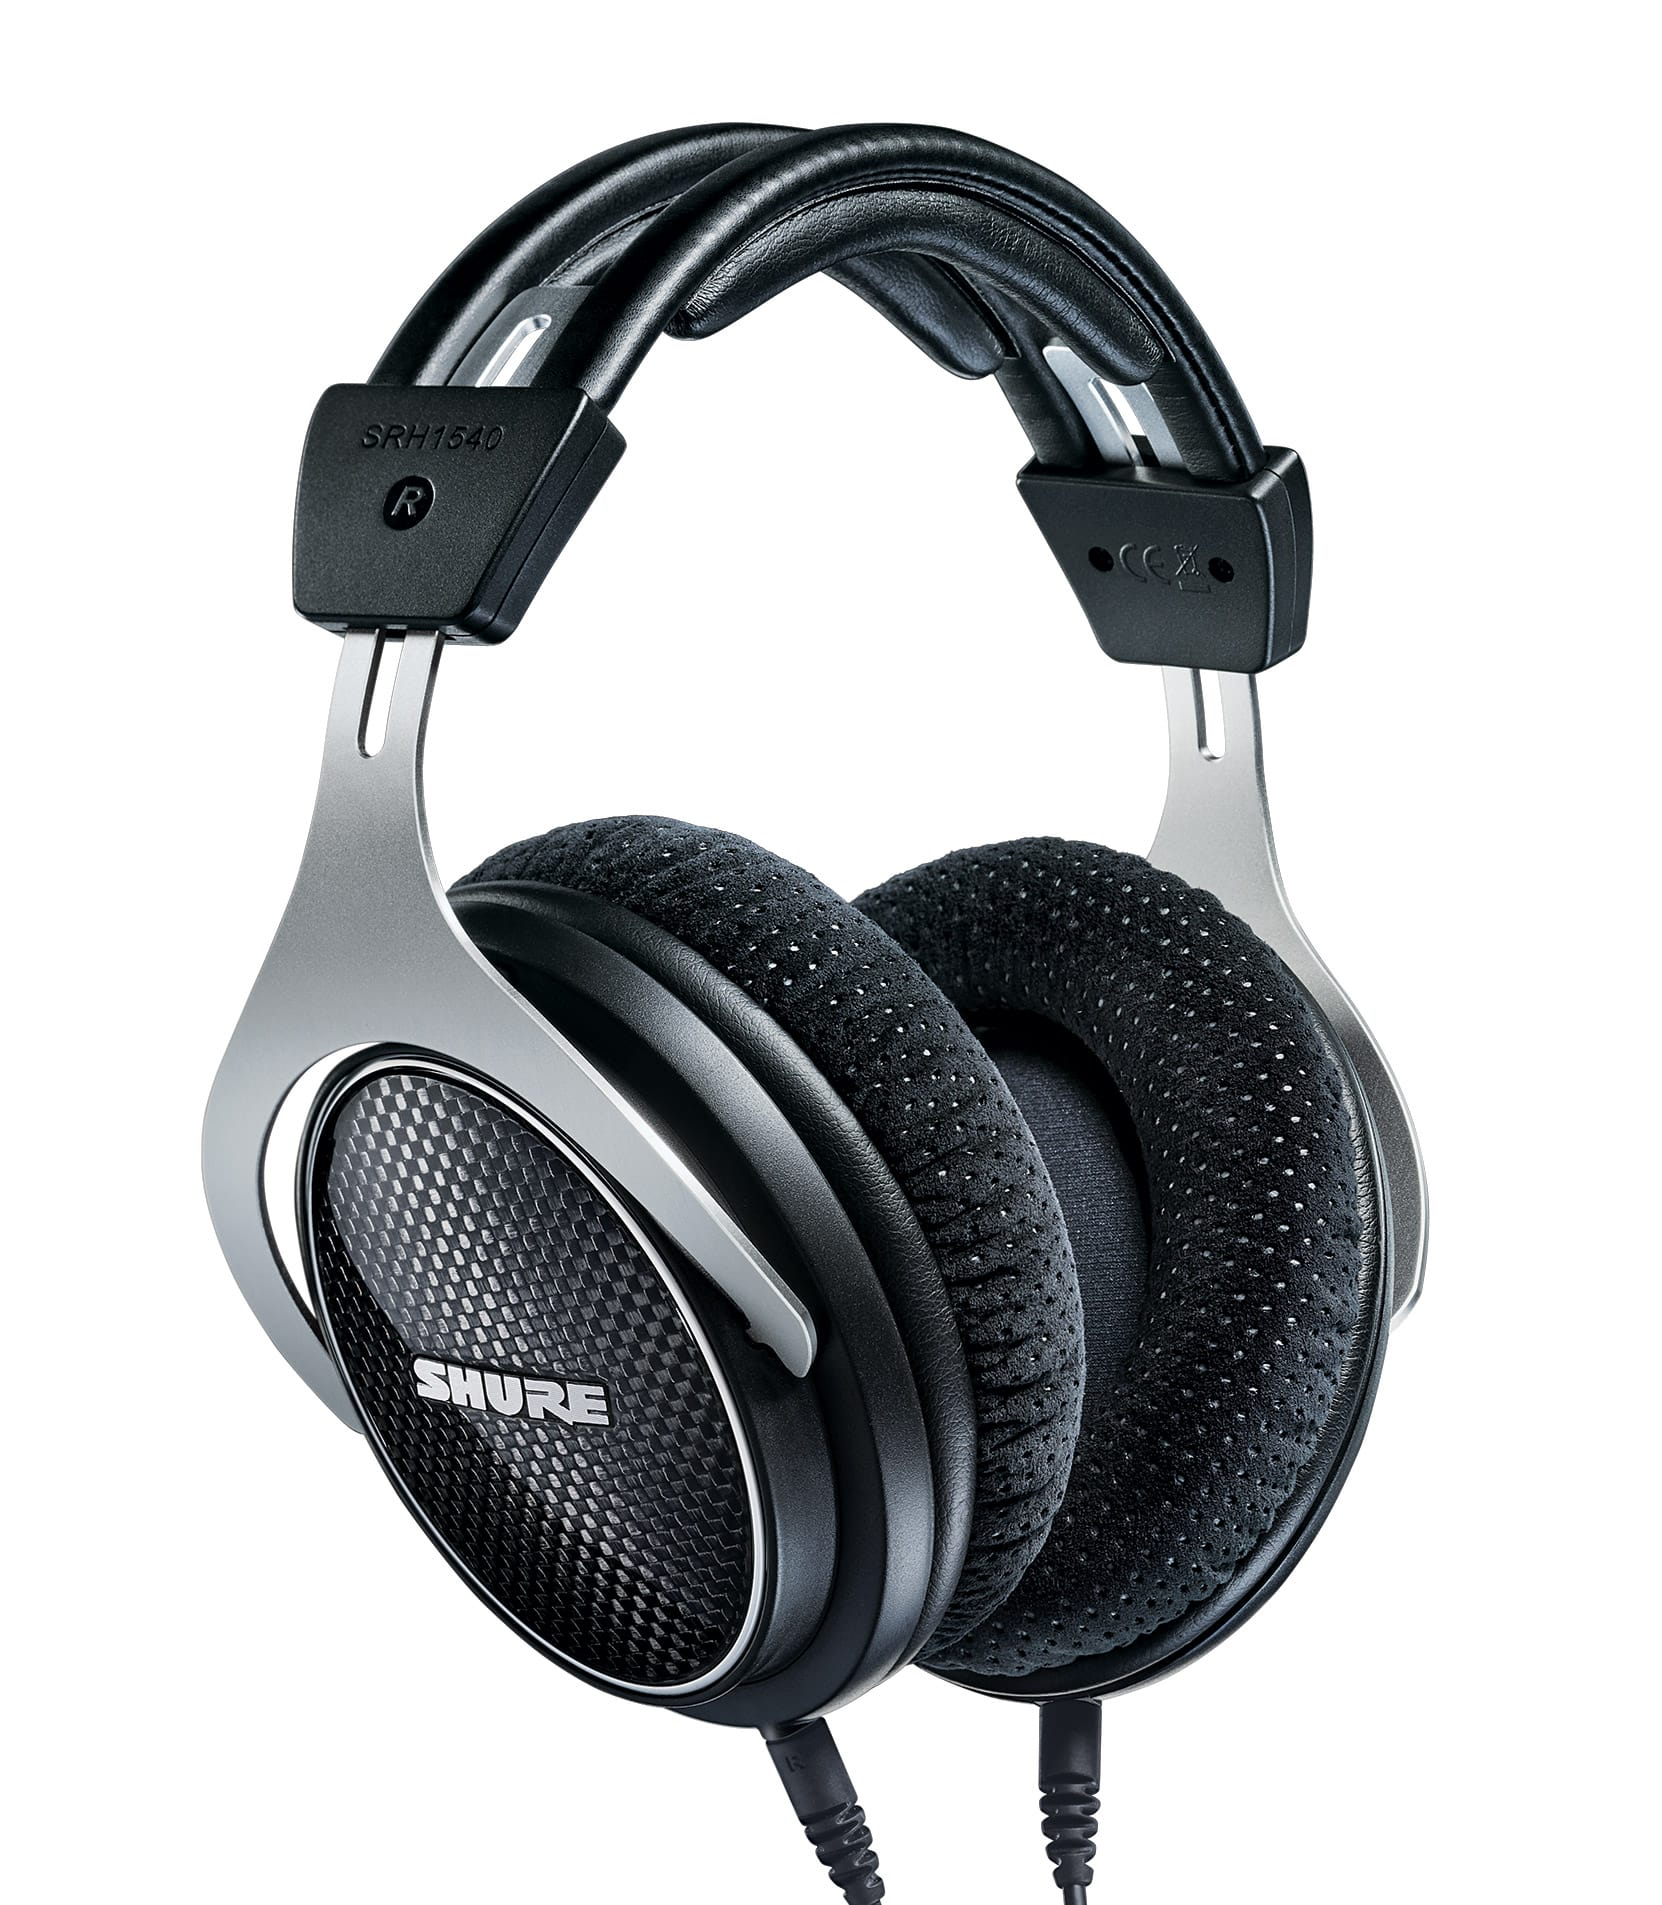 SRH1540 Premium Closed Back Headphones